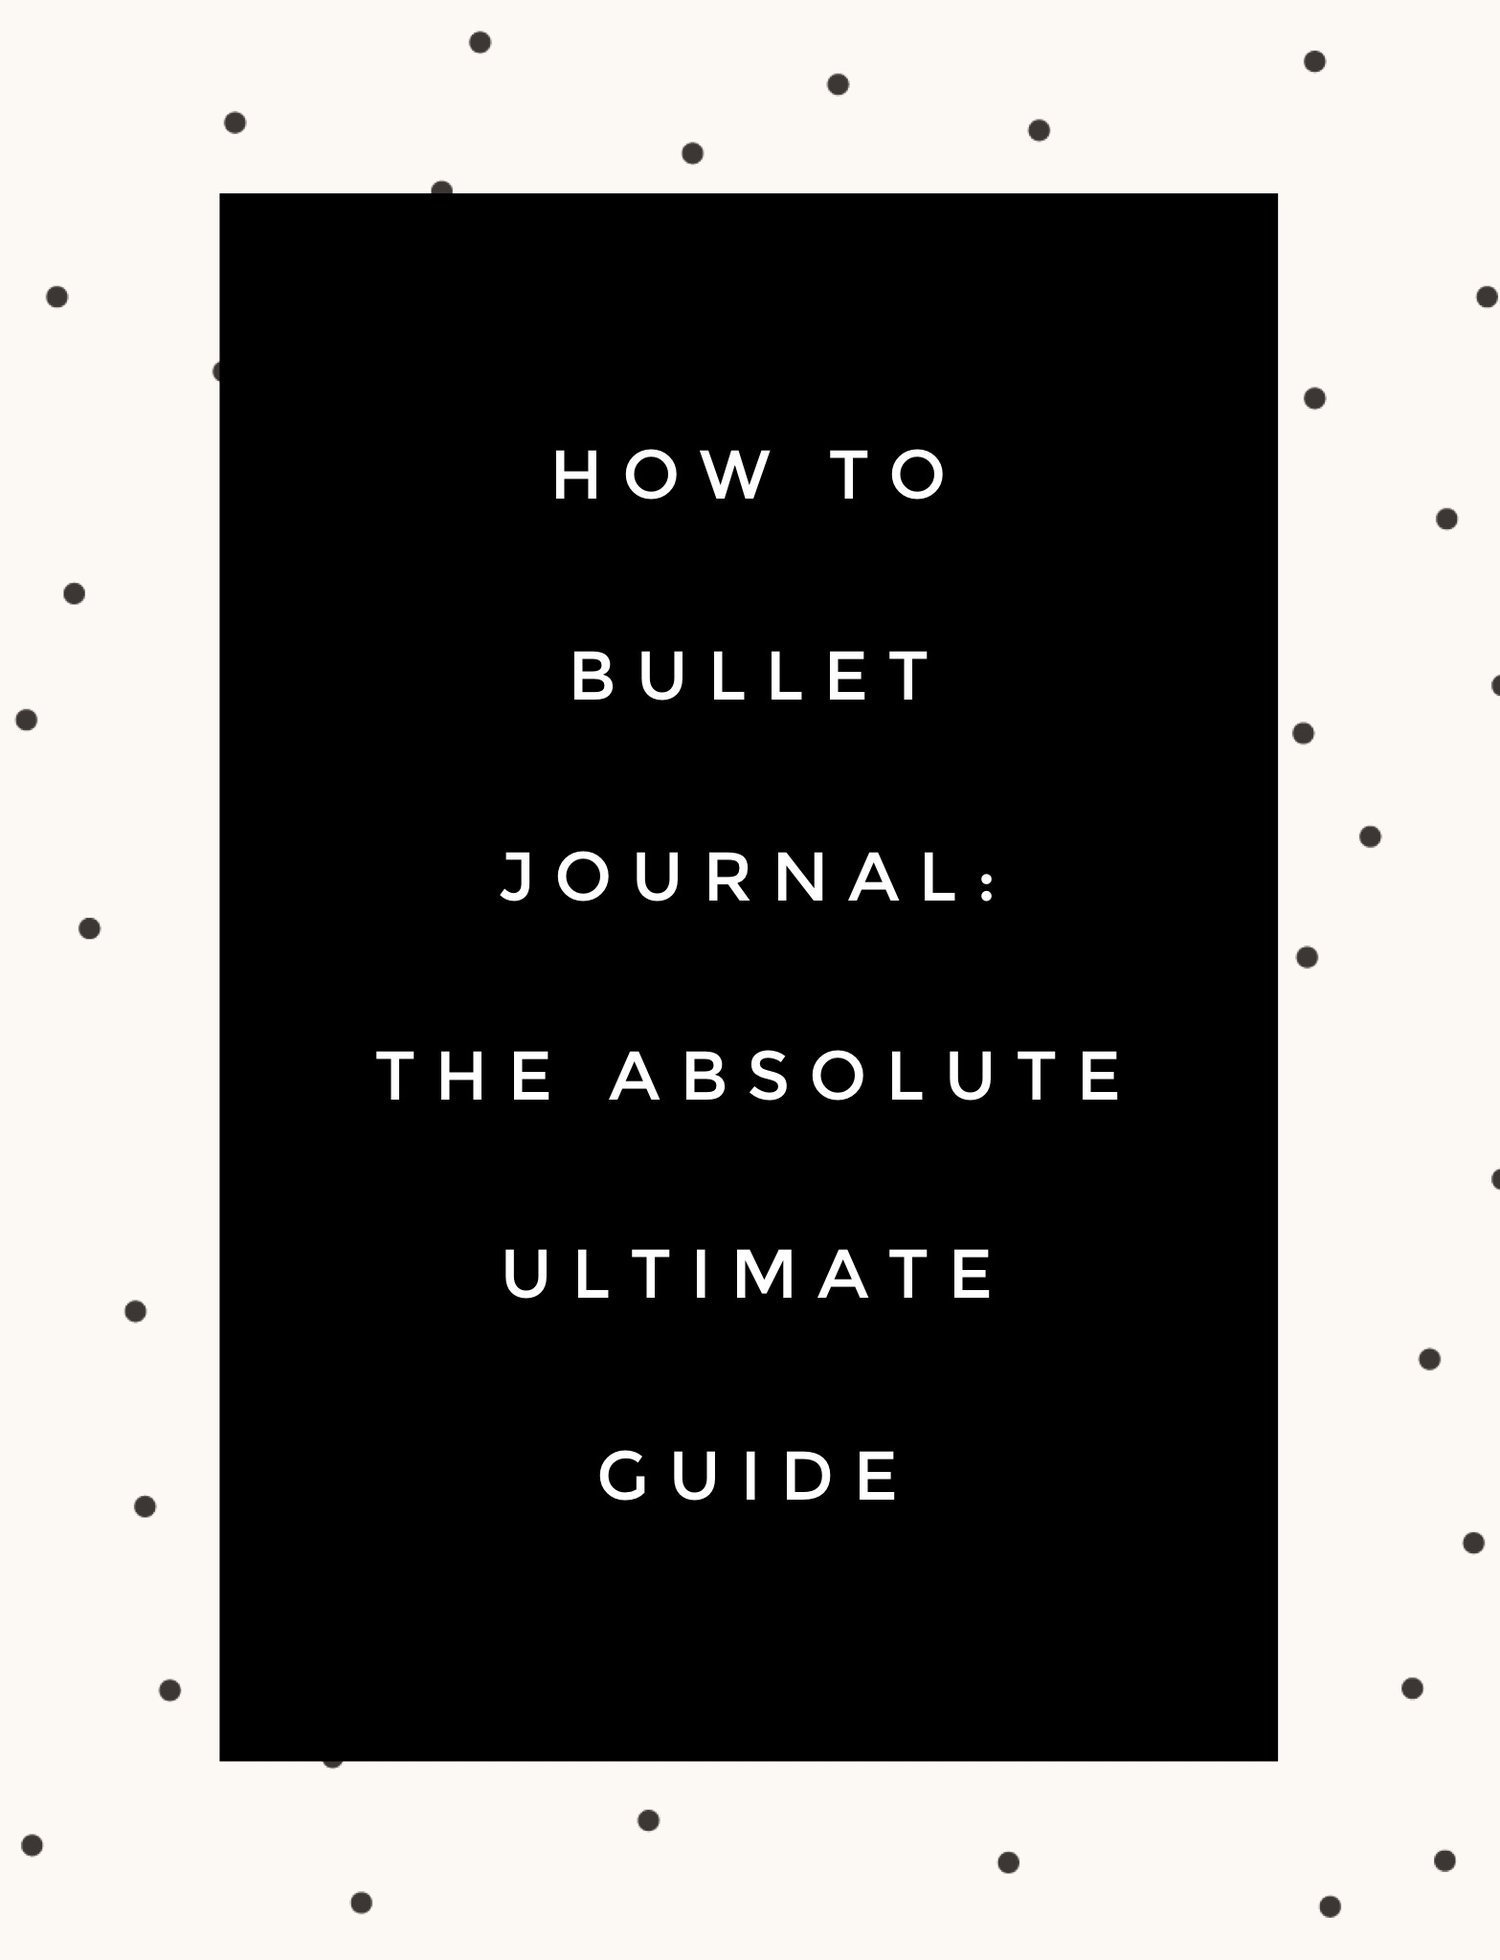 How to Bullet Journal: The Absolute Ultimate Guide — The